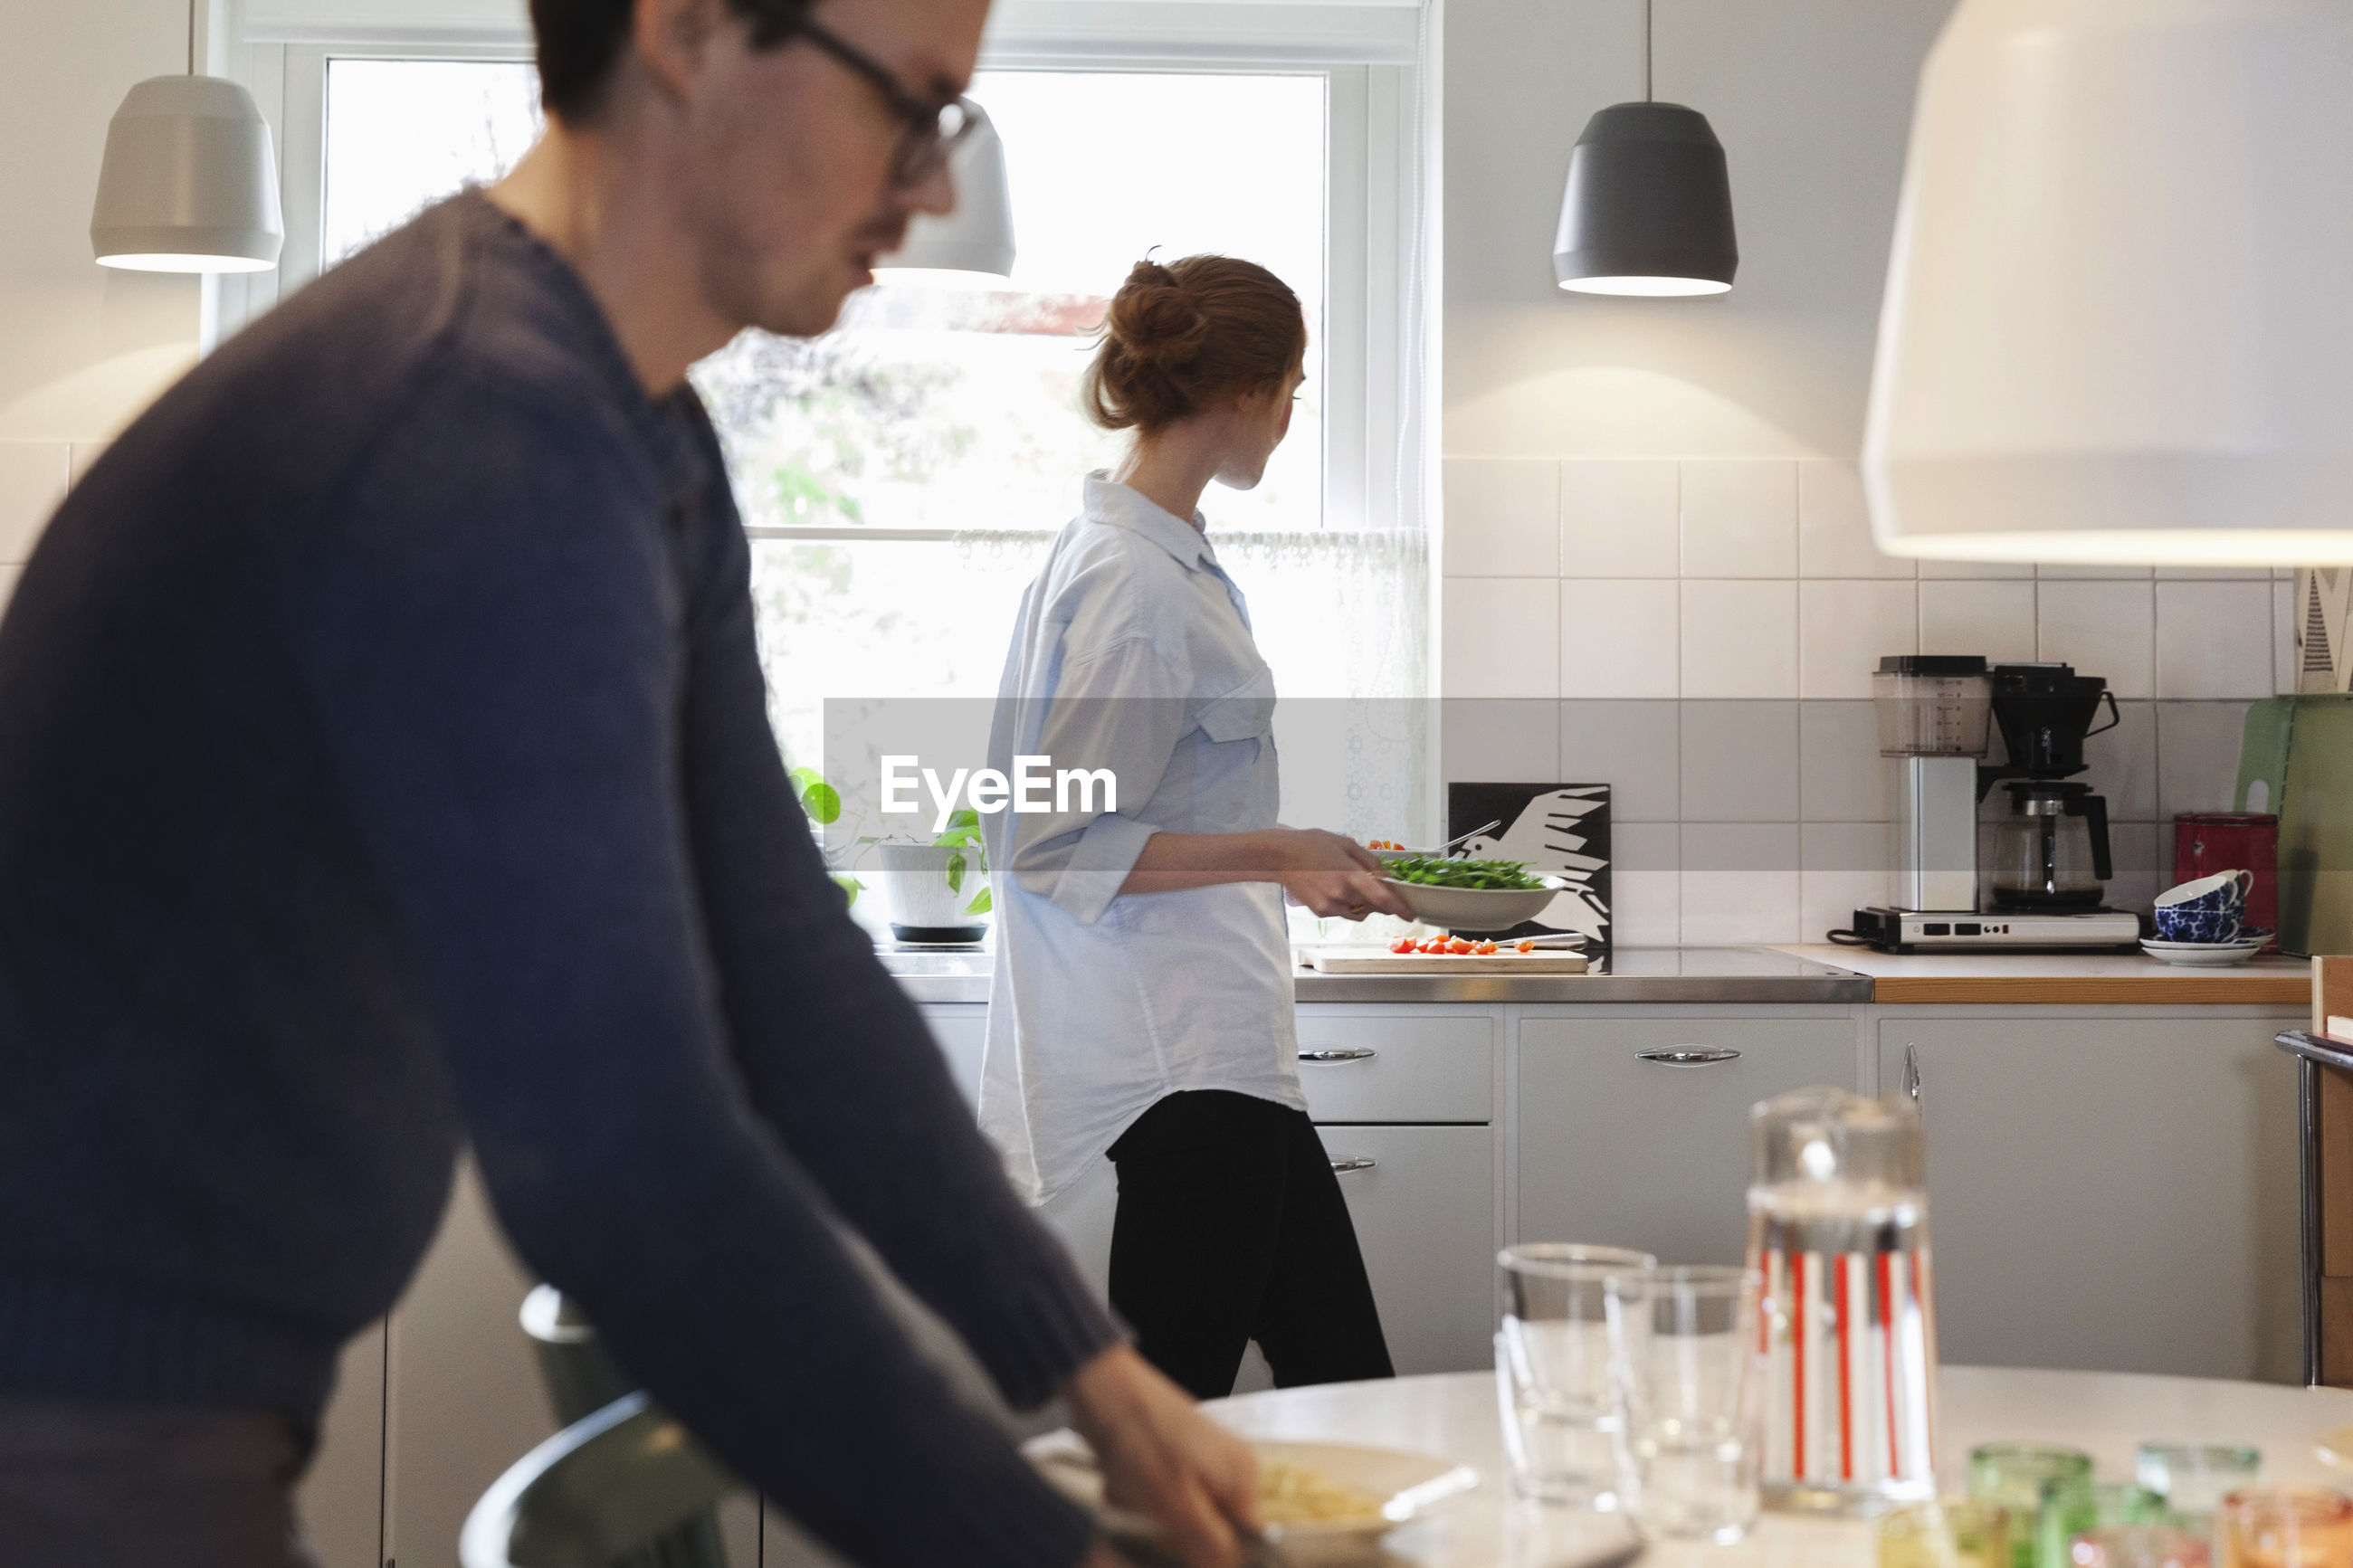 MAN AND WOMAN STANDING IN FRONT OF KITCHEN